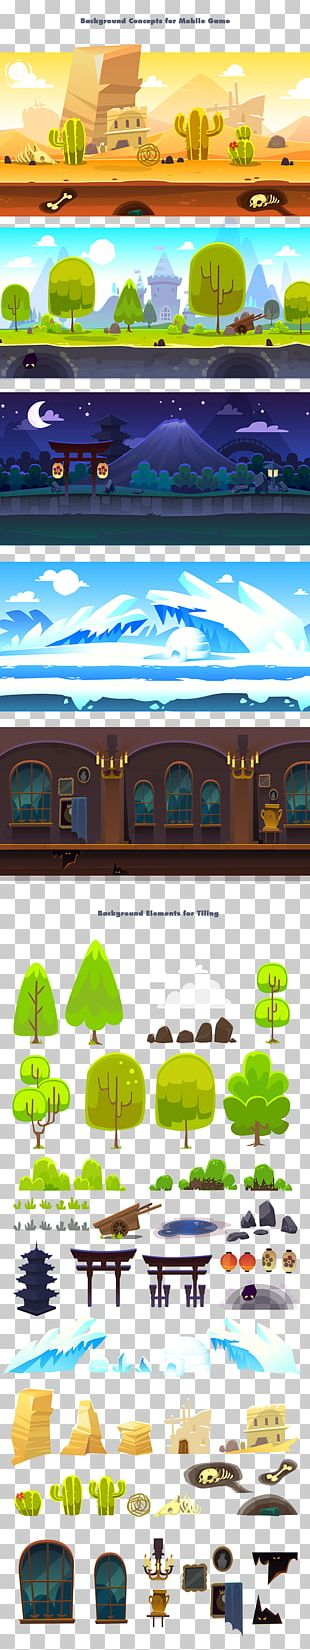 Model Sheet Concept Art User Interface Game PNG